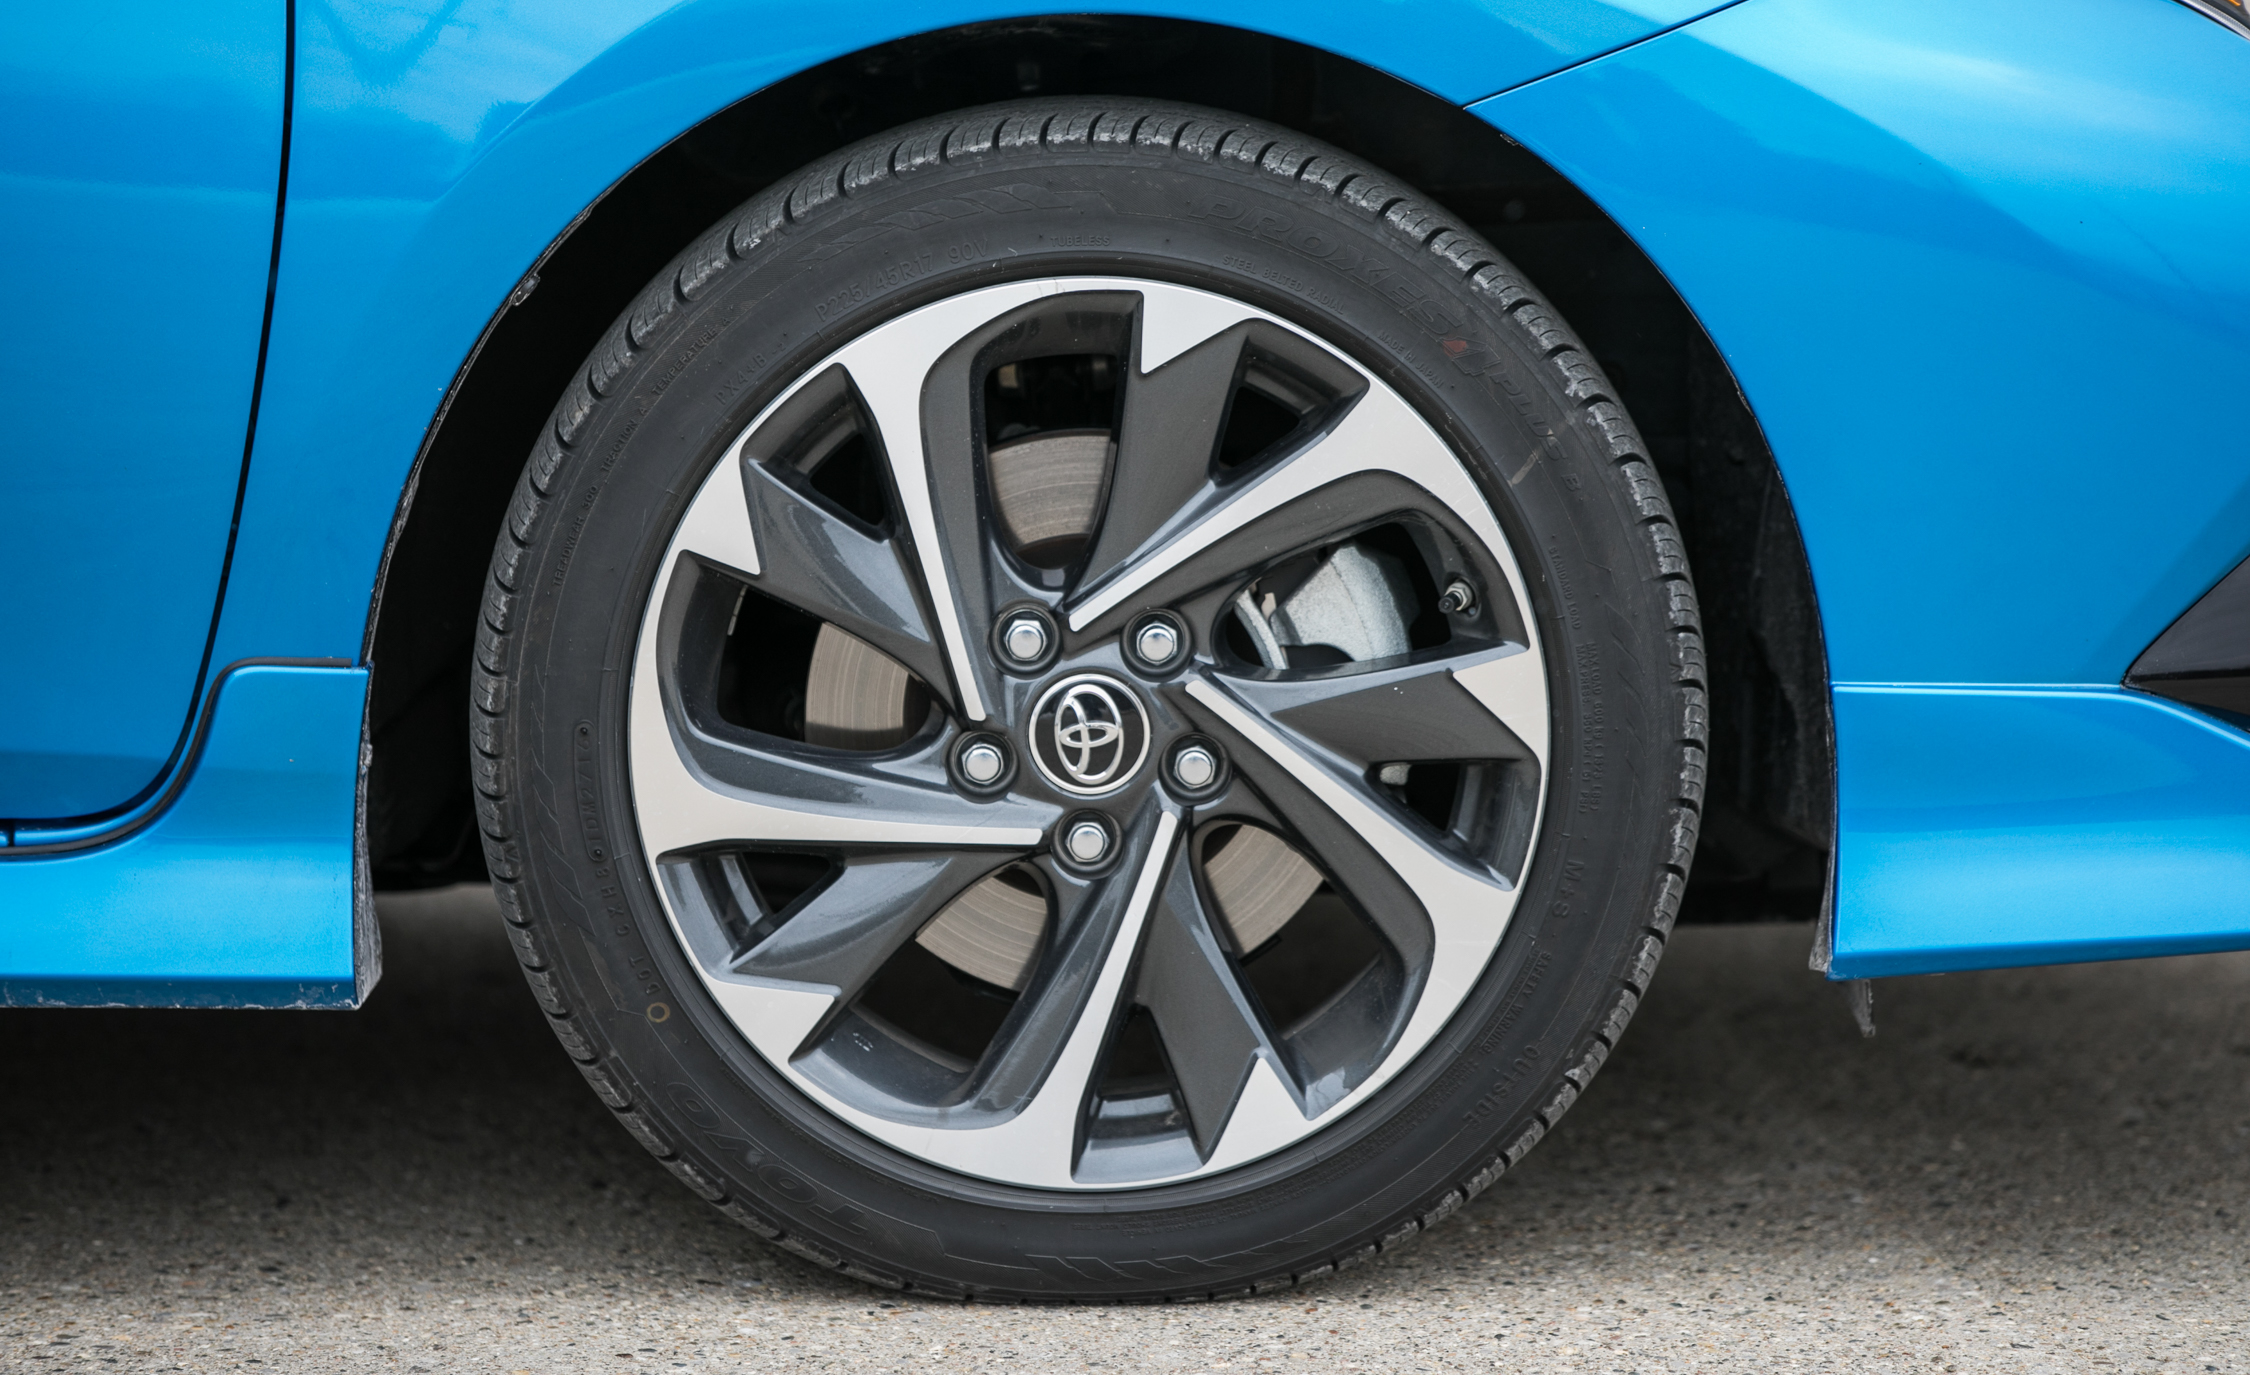 2017 Toyota Corolla IM Hatchback Exterior View Wheel Velg (Photo 16 of 52)